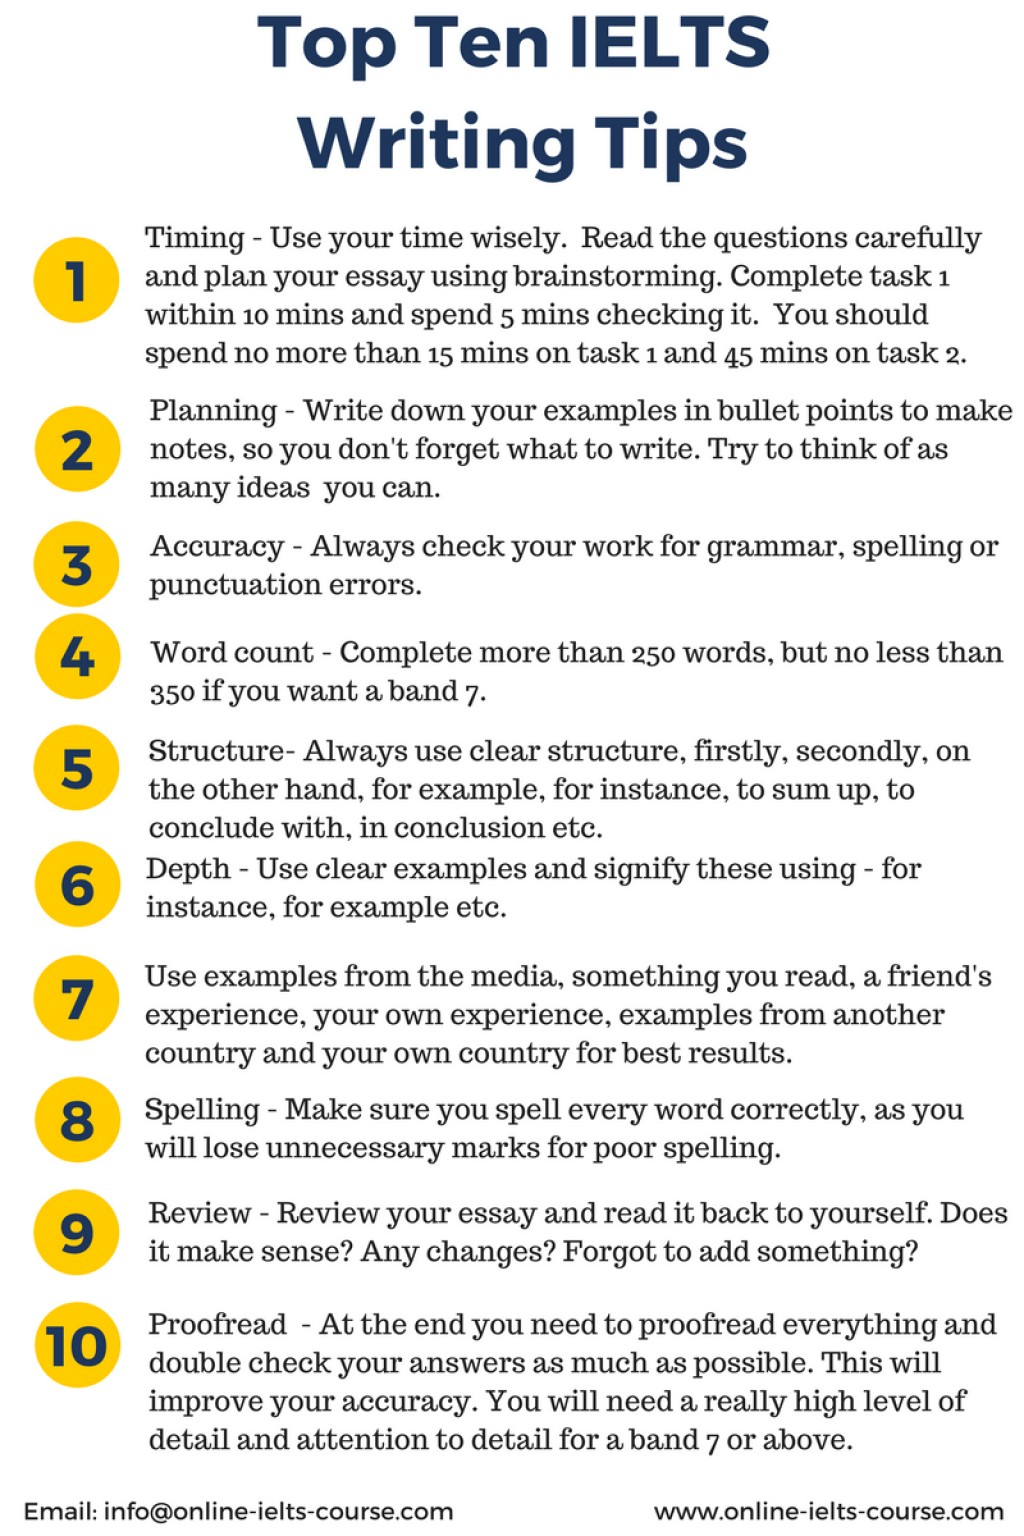 019 Writing An Essay Example Ilets Top Ten Ielts Tips Online Preparation Format C76421 05ba75c064fa4f49bcabc70bde80db General Examples Pdf Band For Training Best Written Essays In Apa College Application Academic Introduction Large